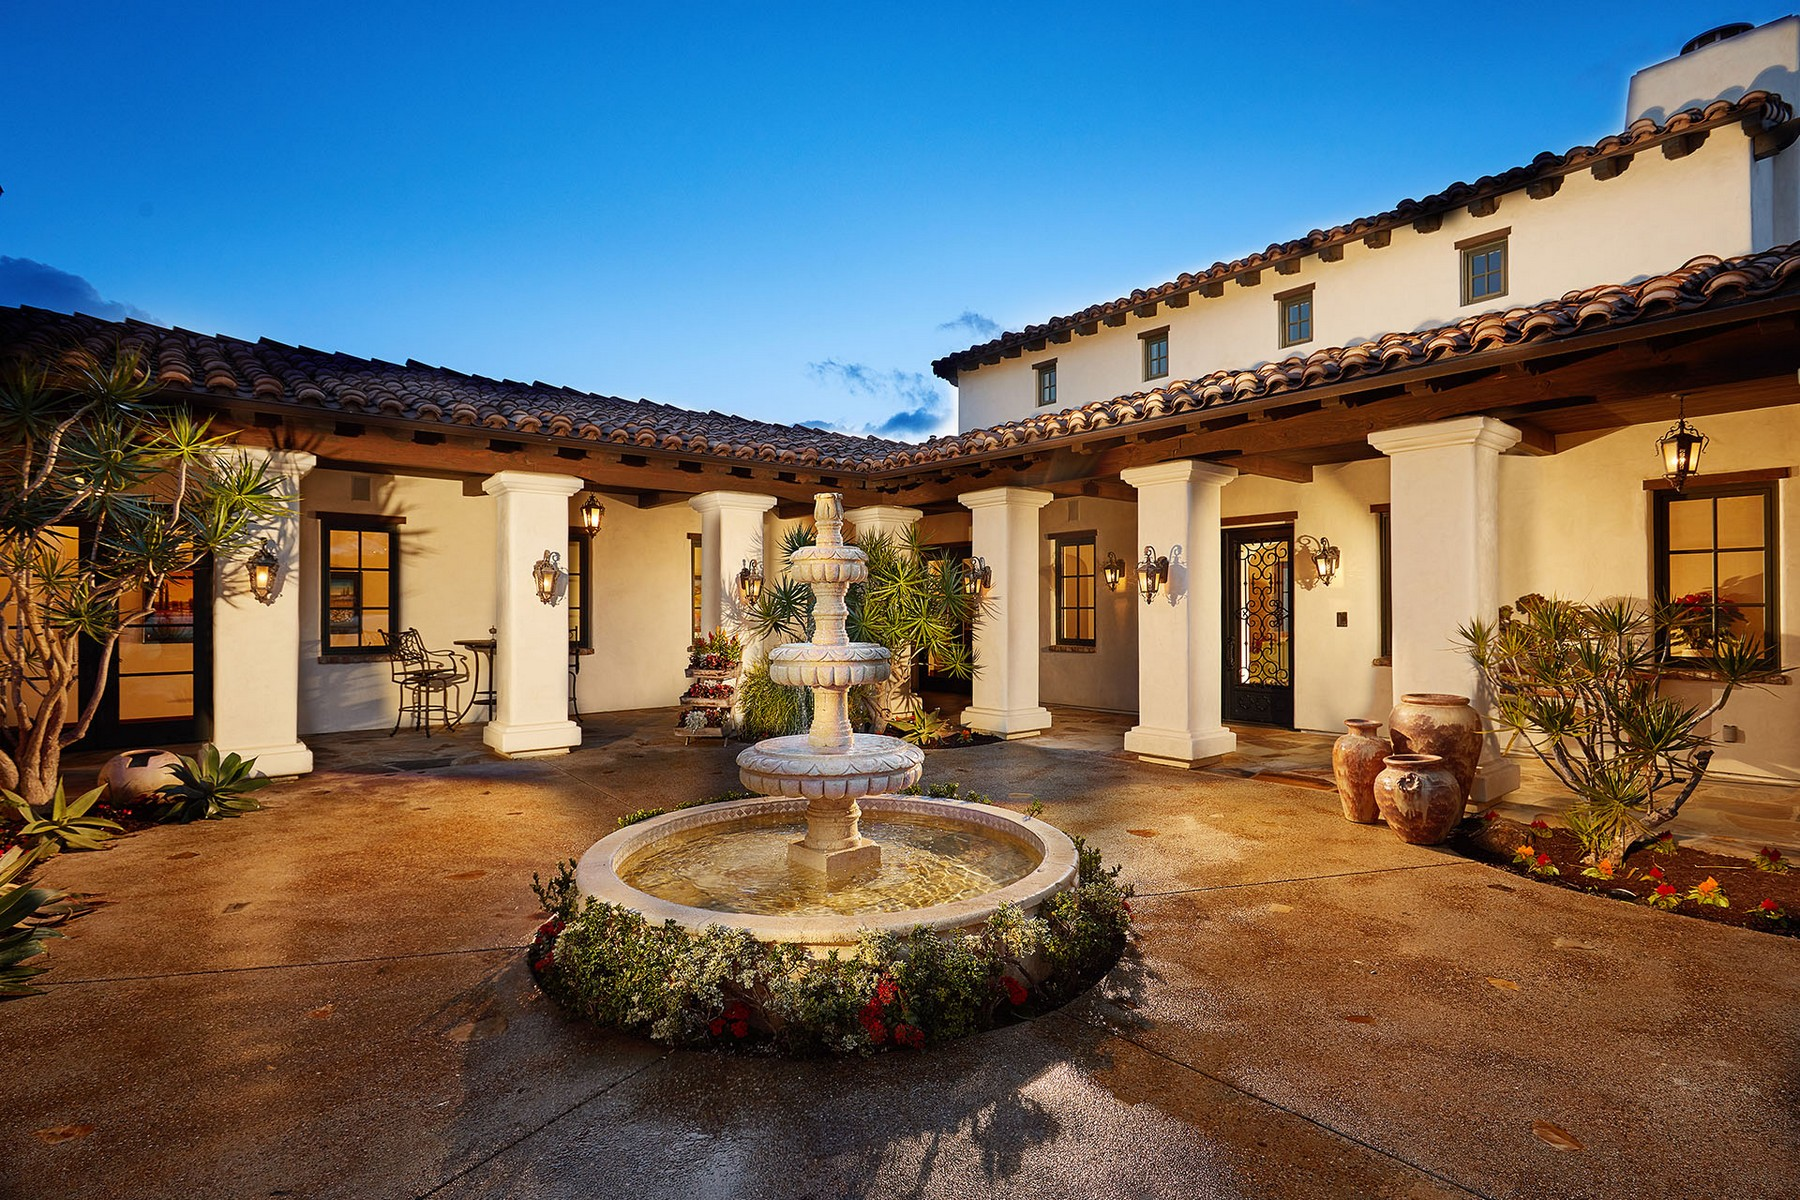 Single Family Home for Sale at 16570 Road to Rio San Diego, California, 92127 United States